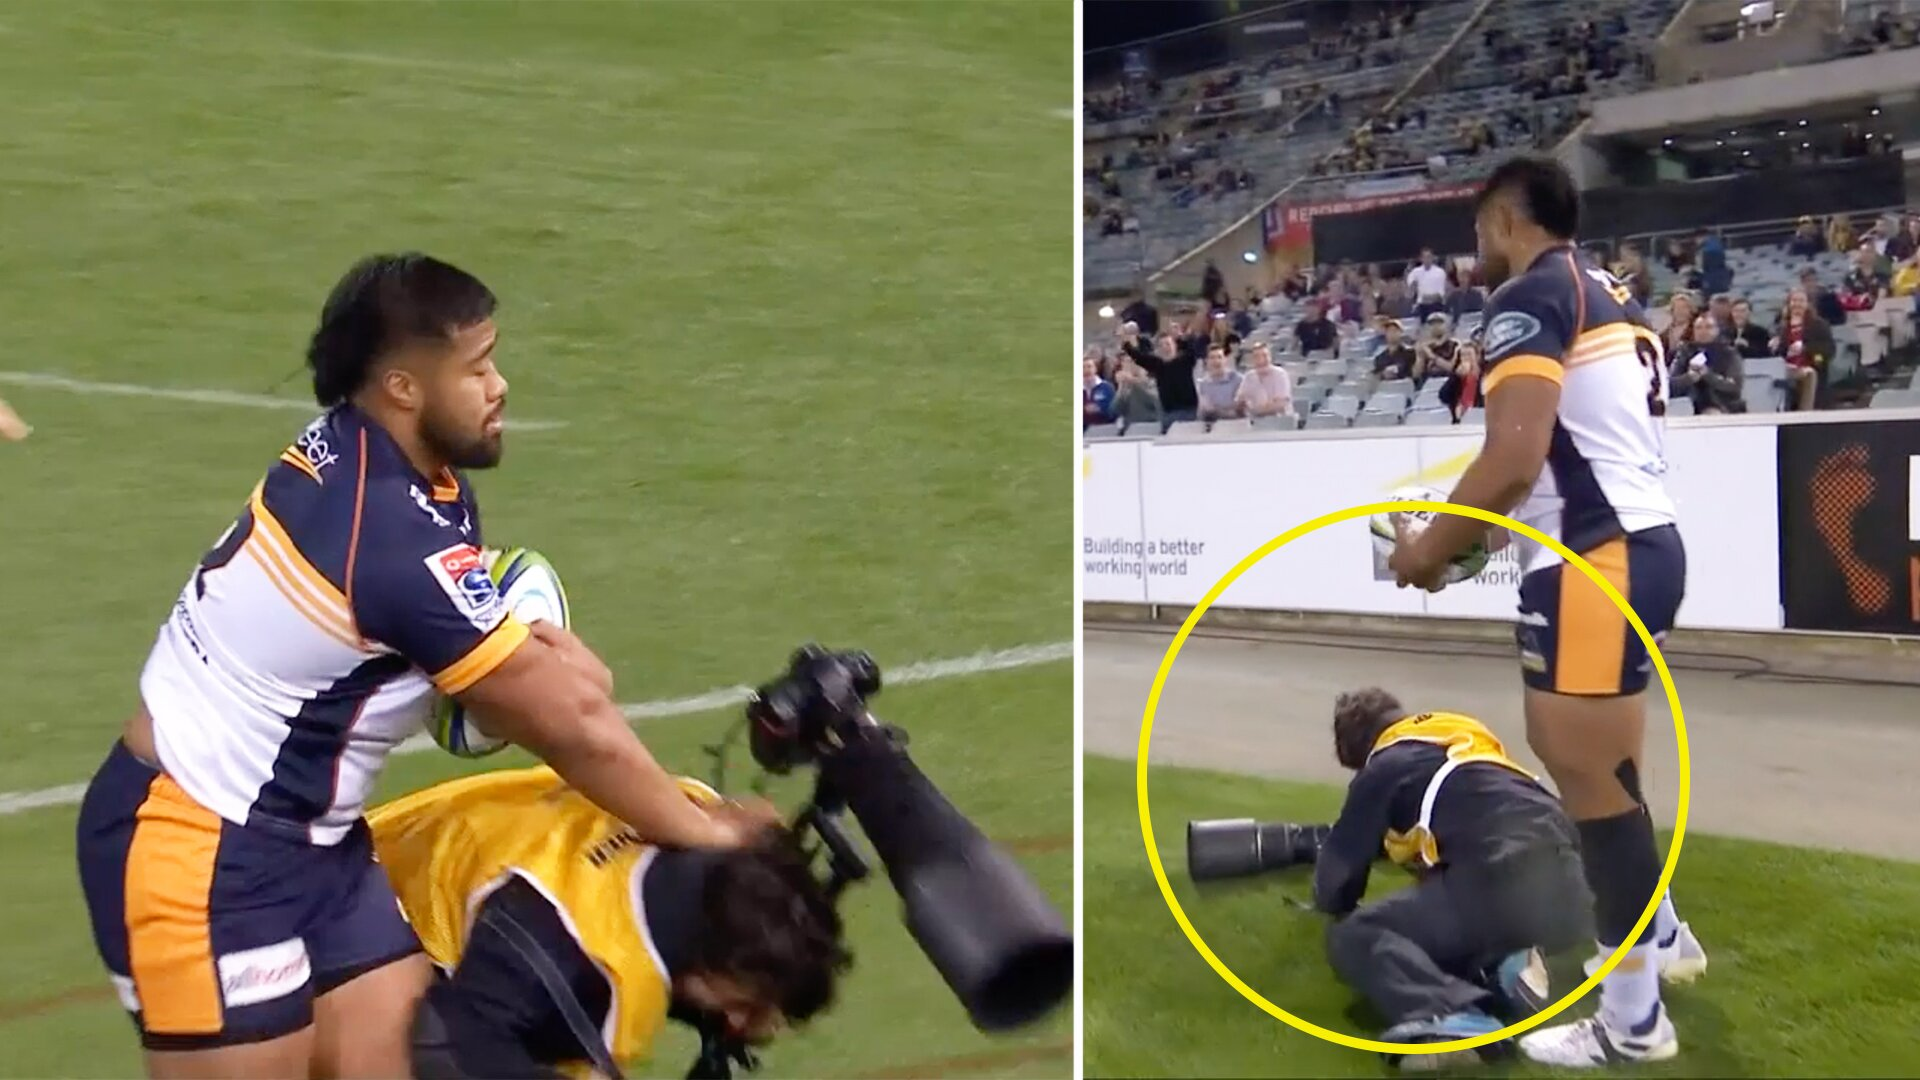 Crowd stunned in Super Rugby AU final after shocking photographer incident